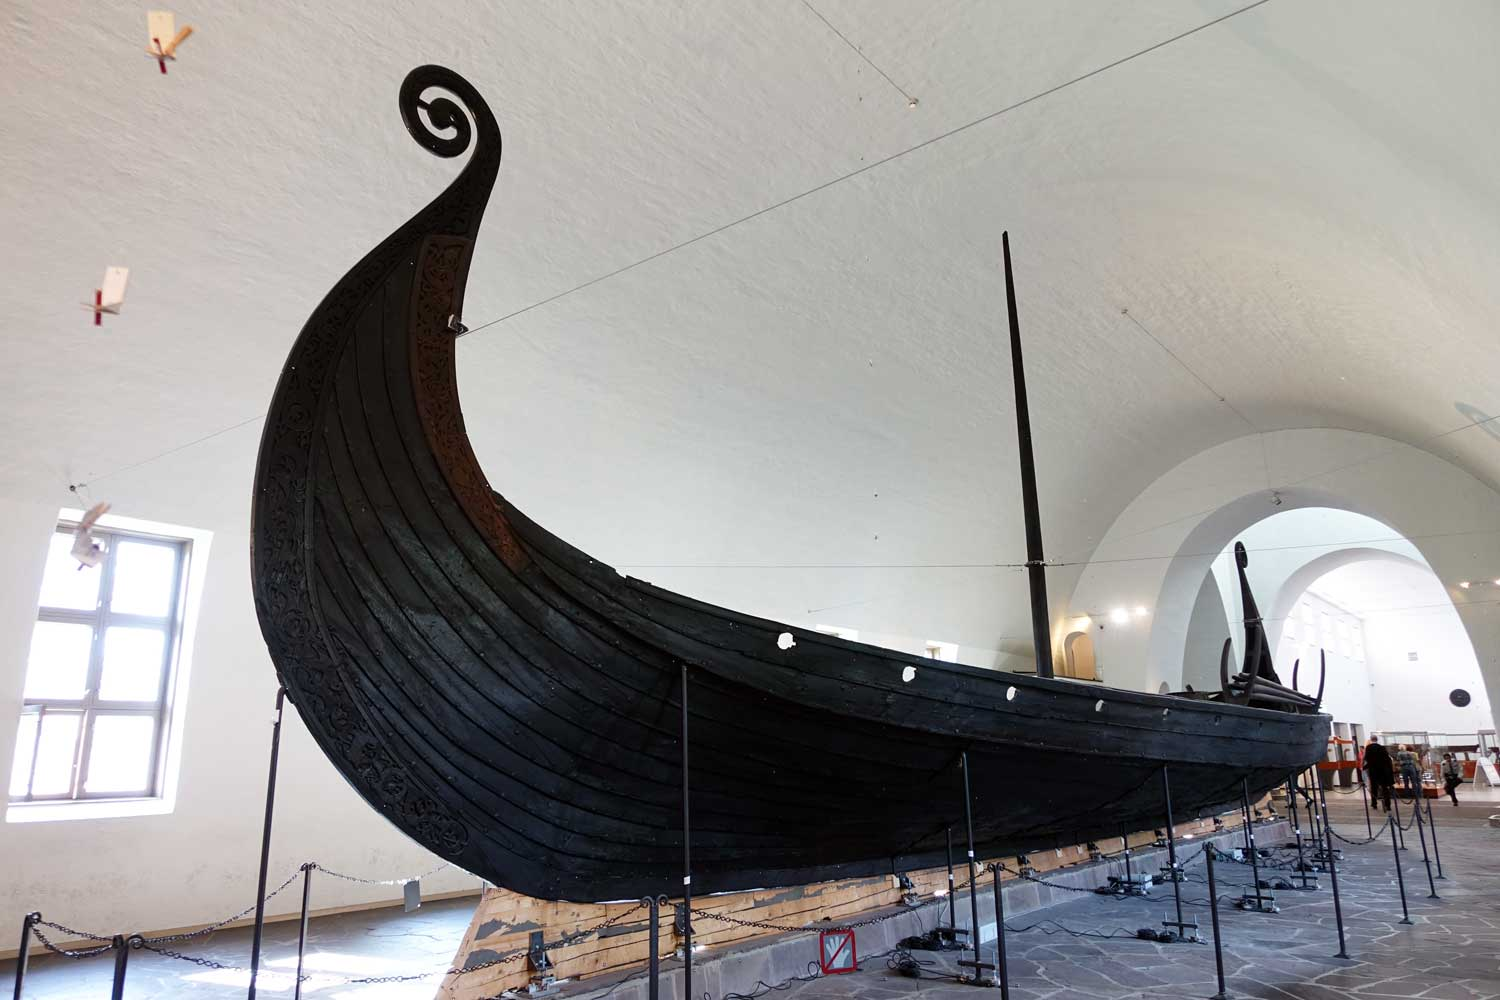 Oslo viking ship museum